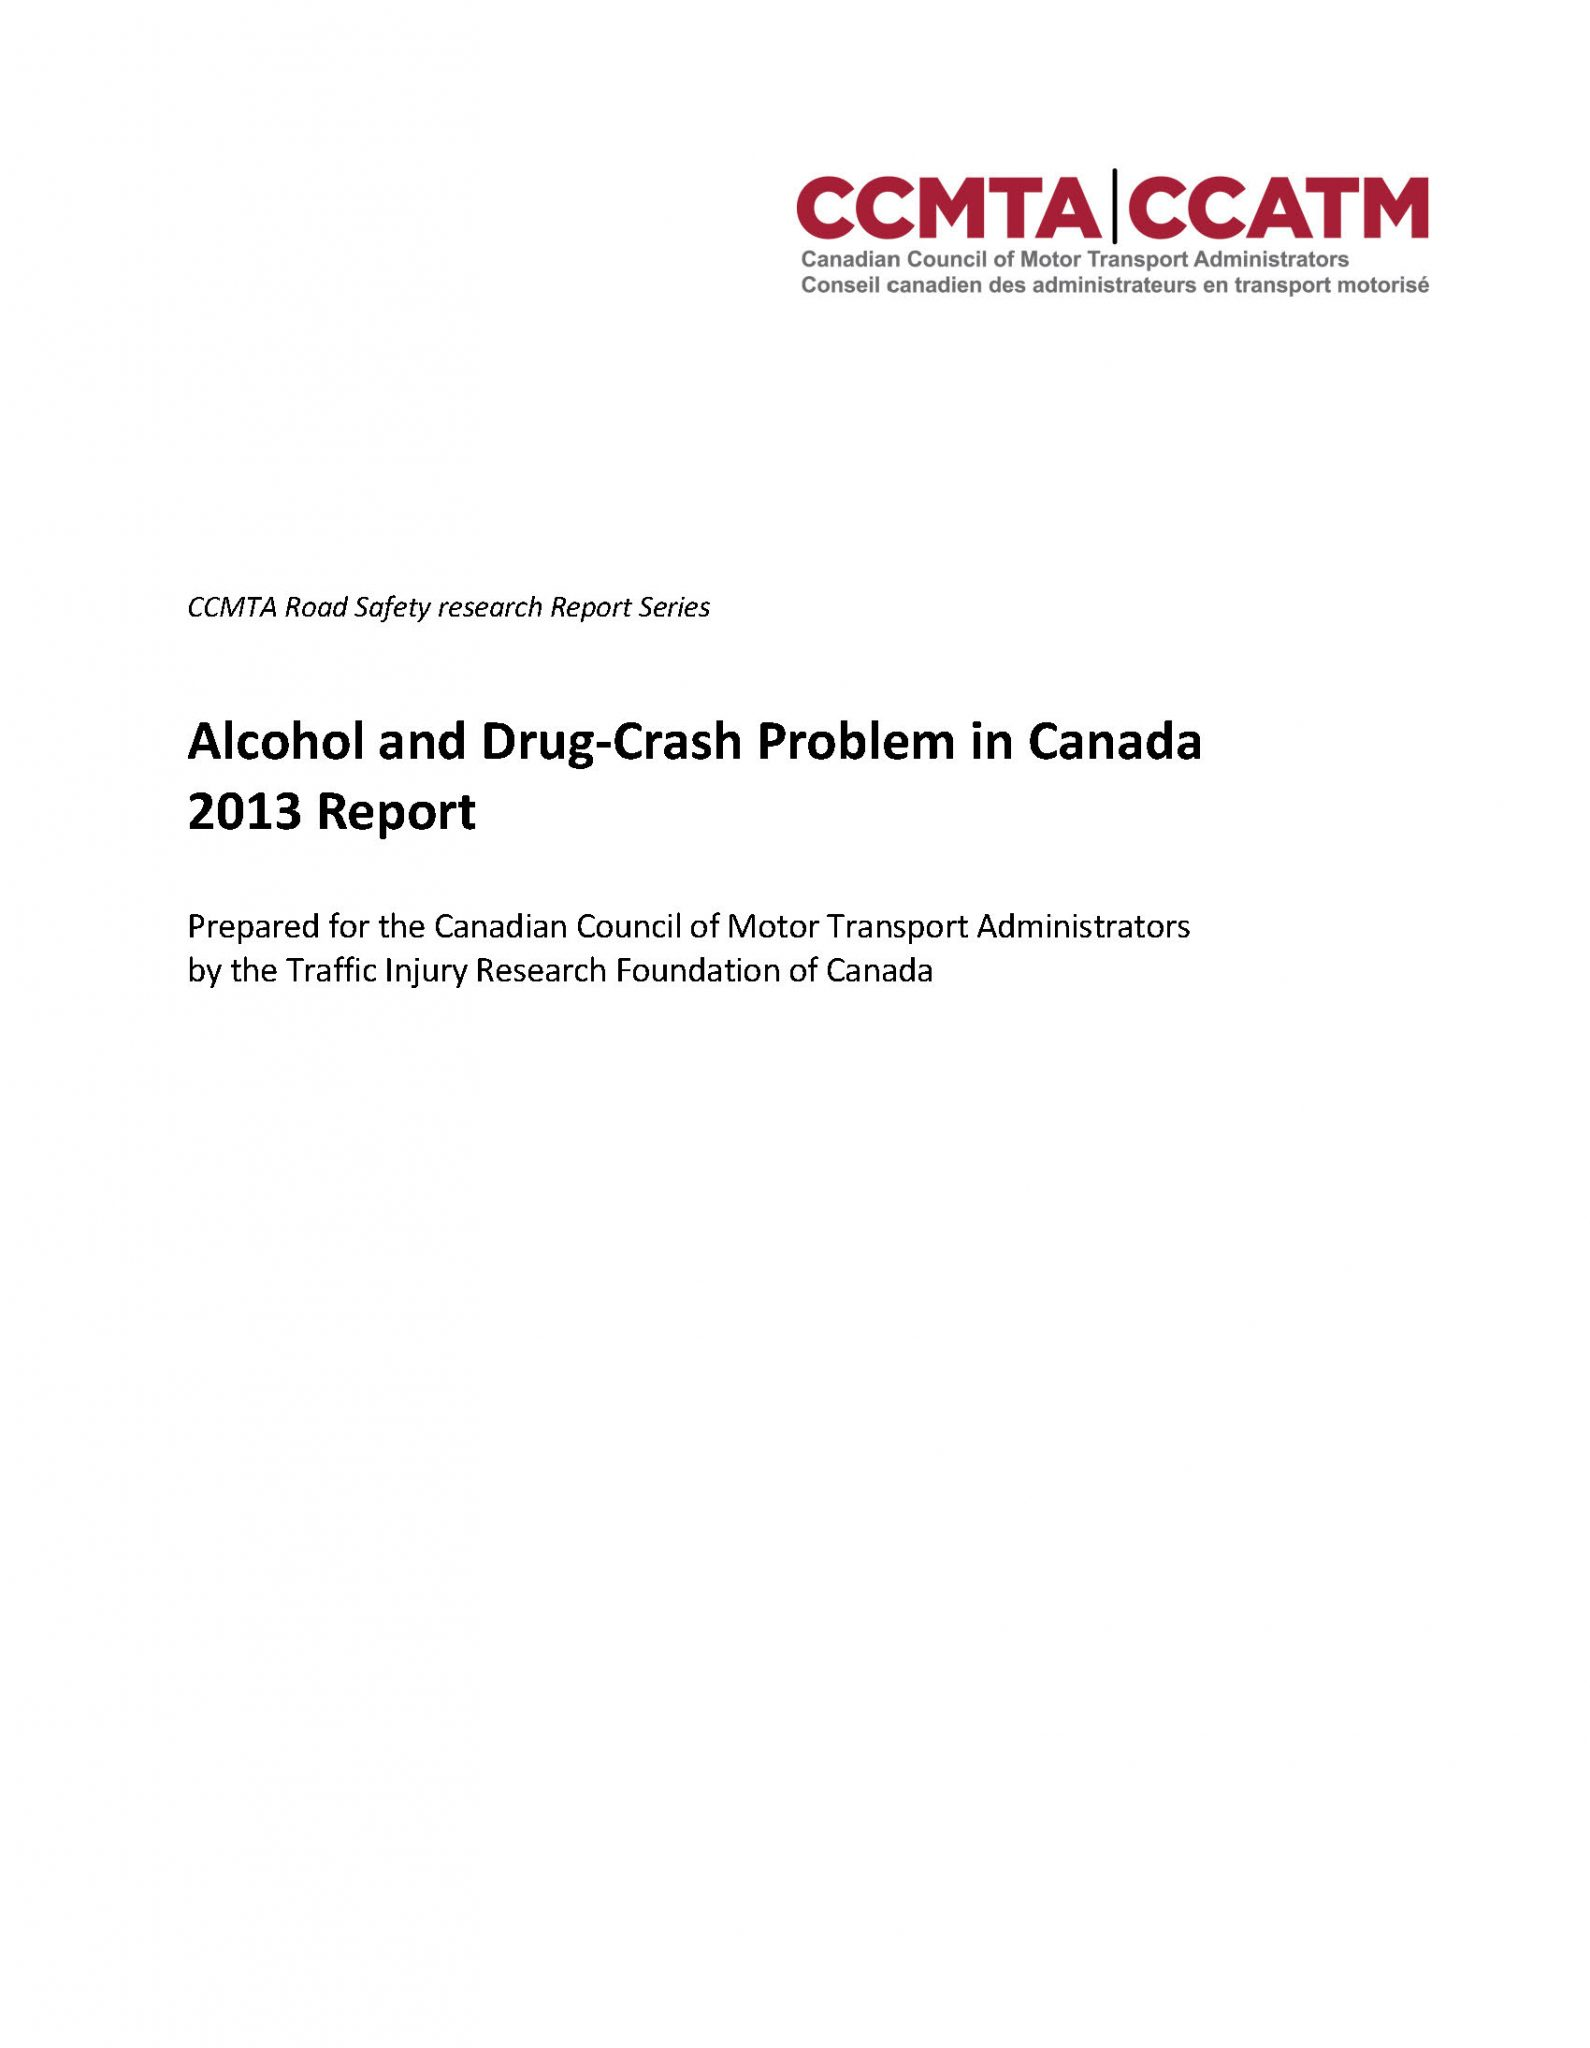 The Alcohol and Drug-Crash Problem in Canada: 2013